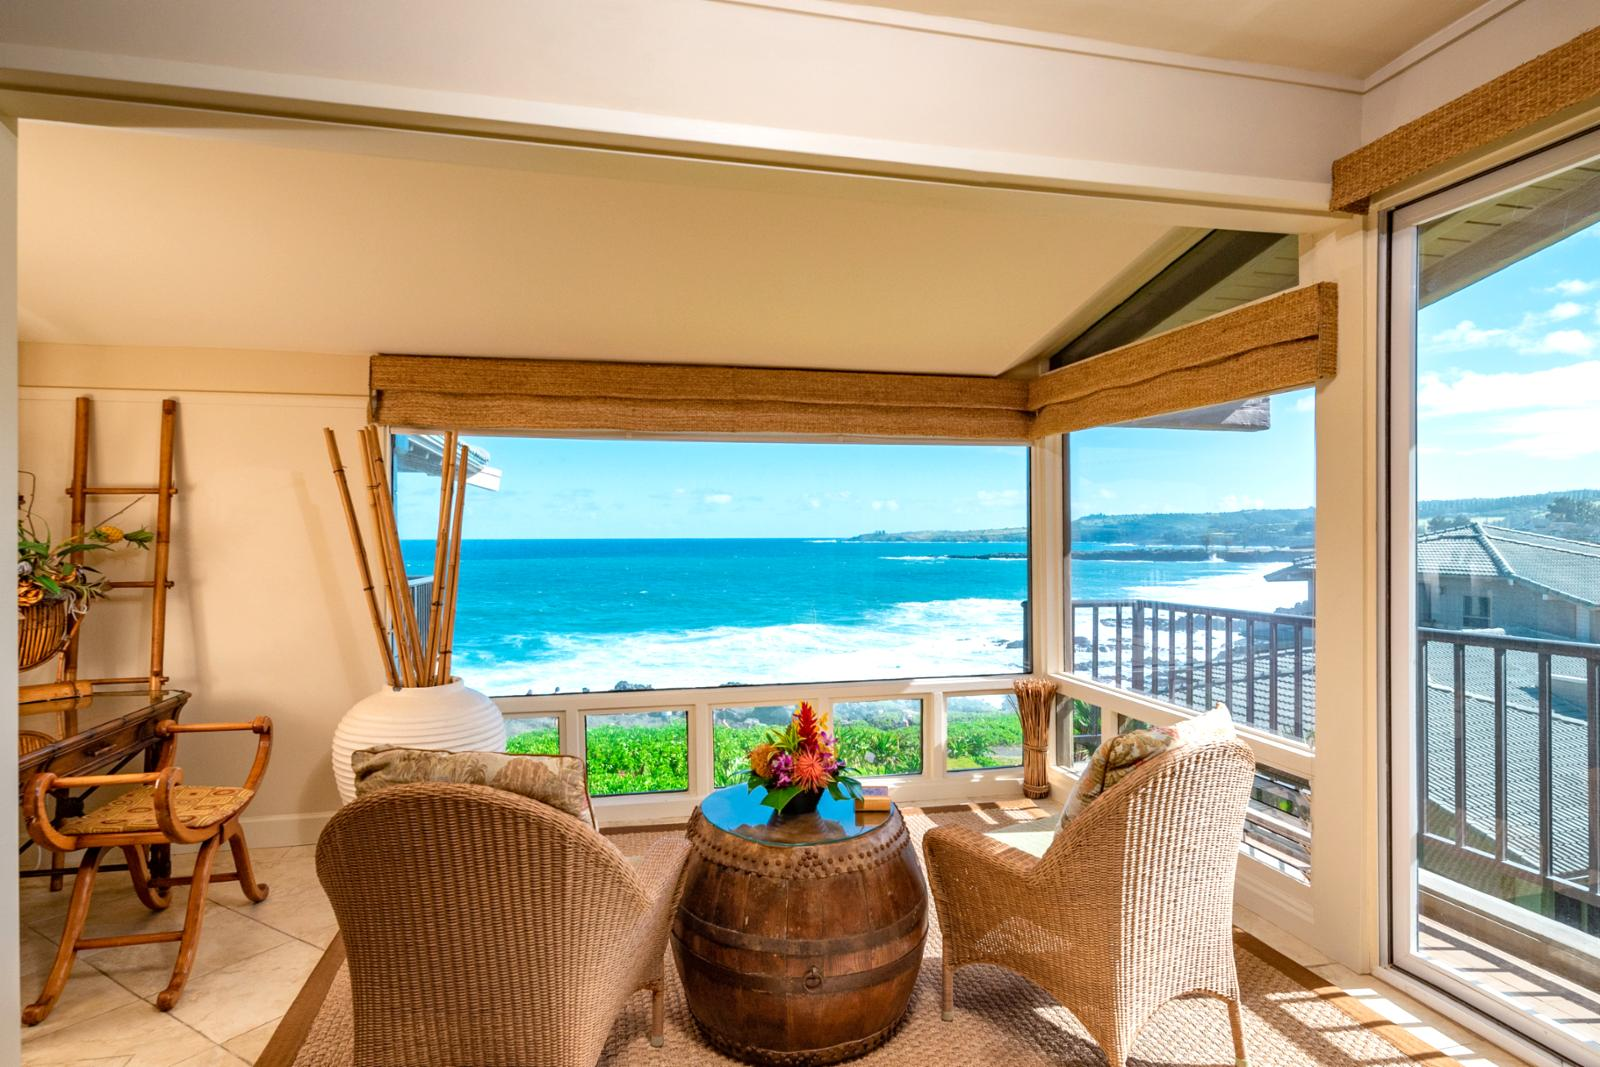 Sit back, relax, and enjoy these sweeping views!